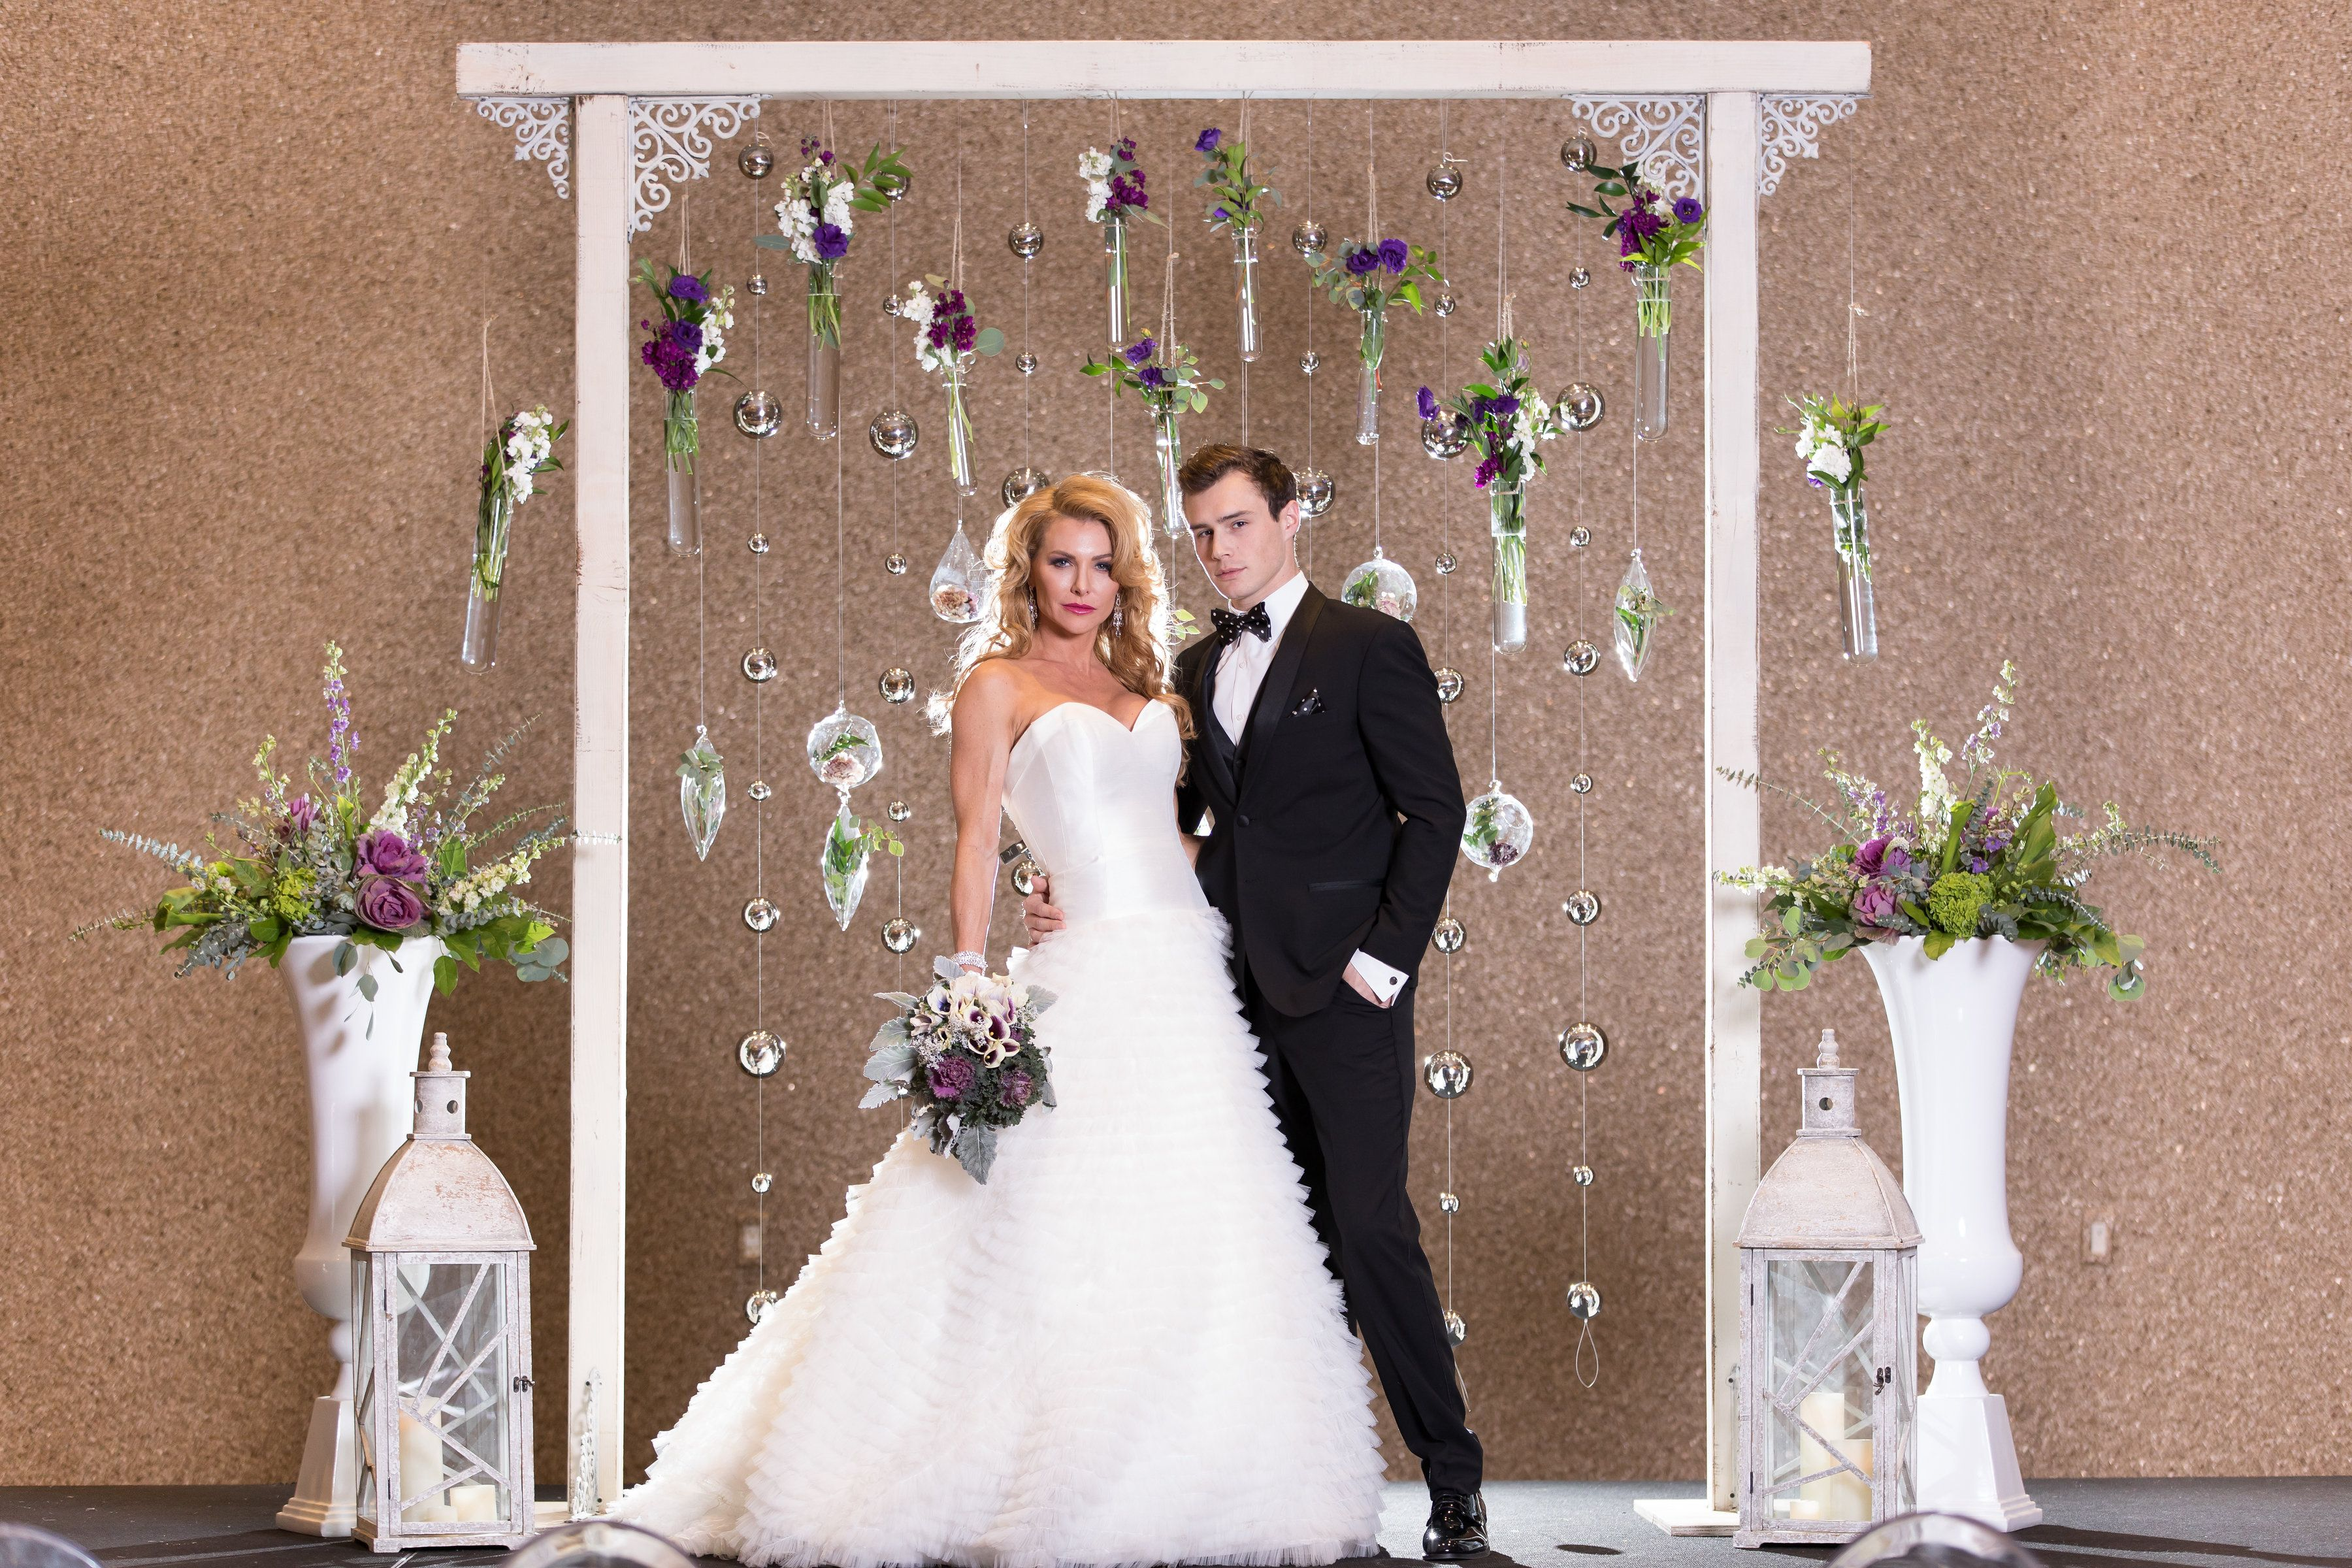 Sensfun 10x6.5ft Wedding Ceremony Photo Booth Backdrops Bridal Shower Arch White Curtain Rose Flower Decor Photography Background Flowers Petal on Sand Beach Photo Studio Props WP022//10x6.5ft